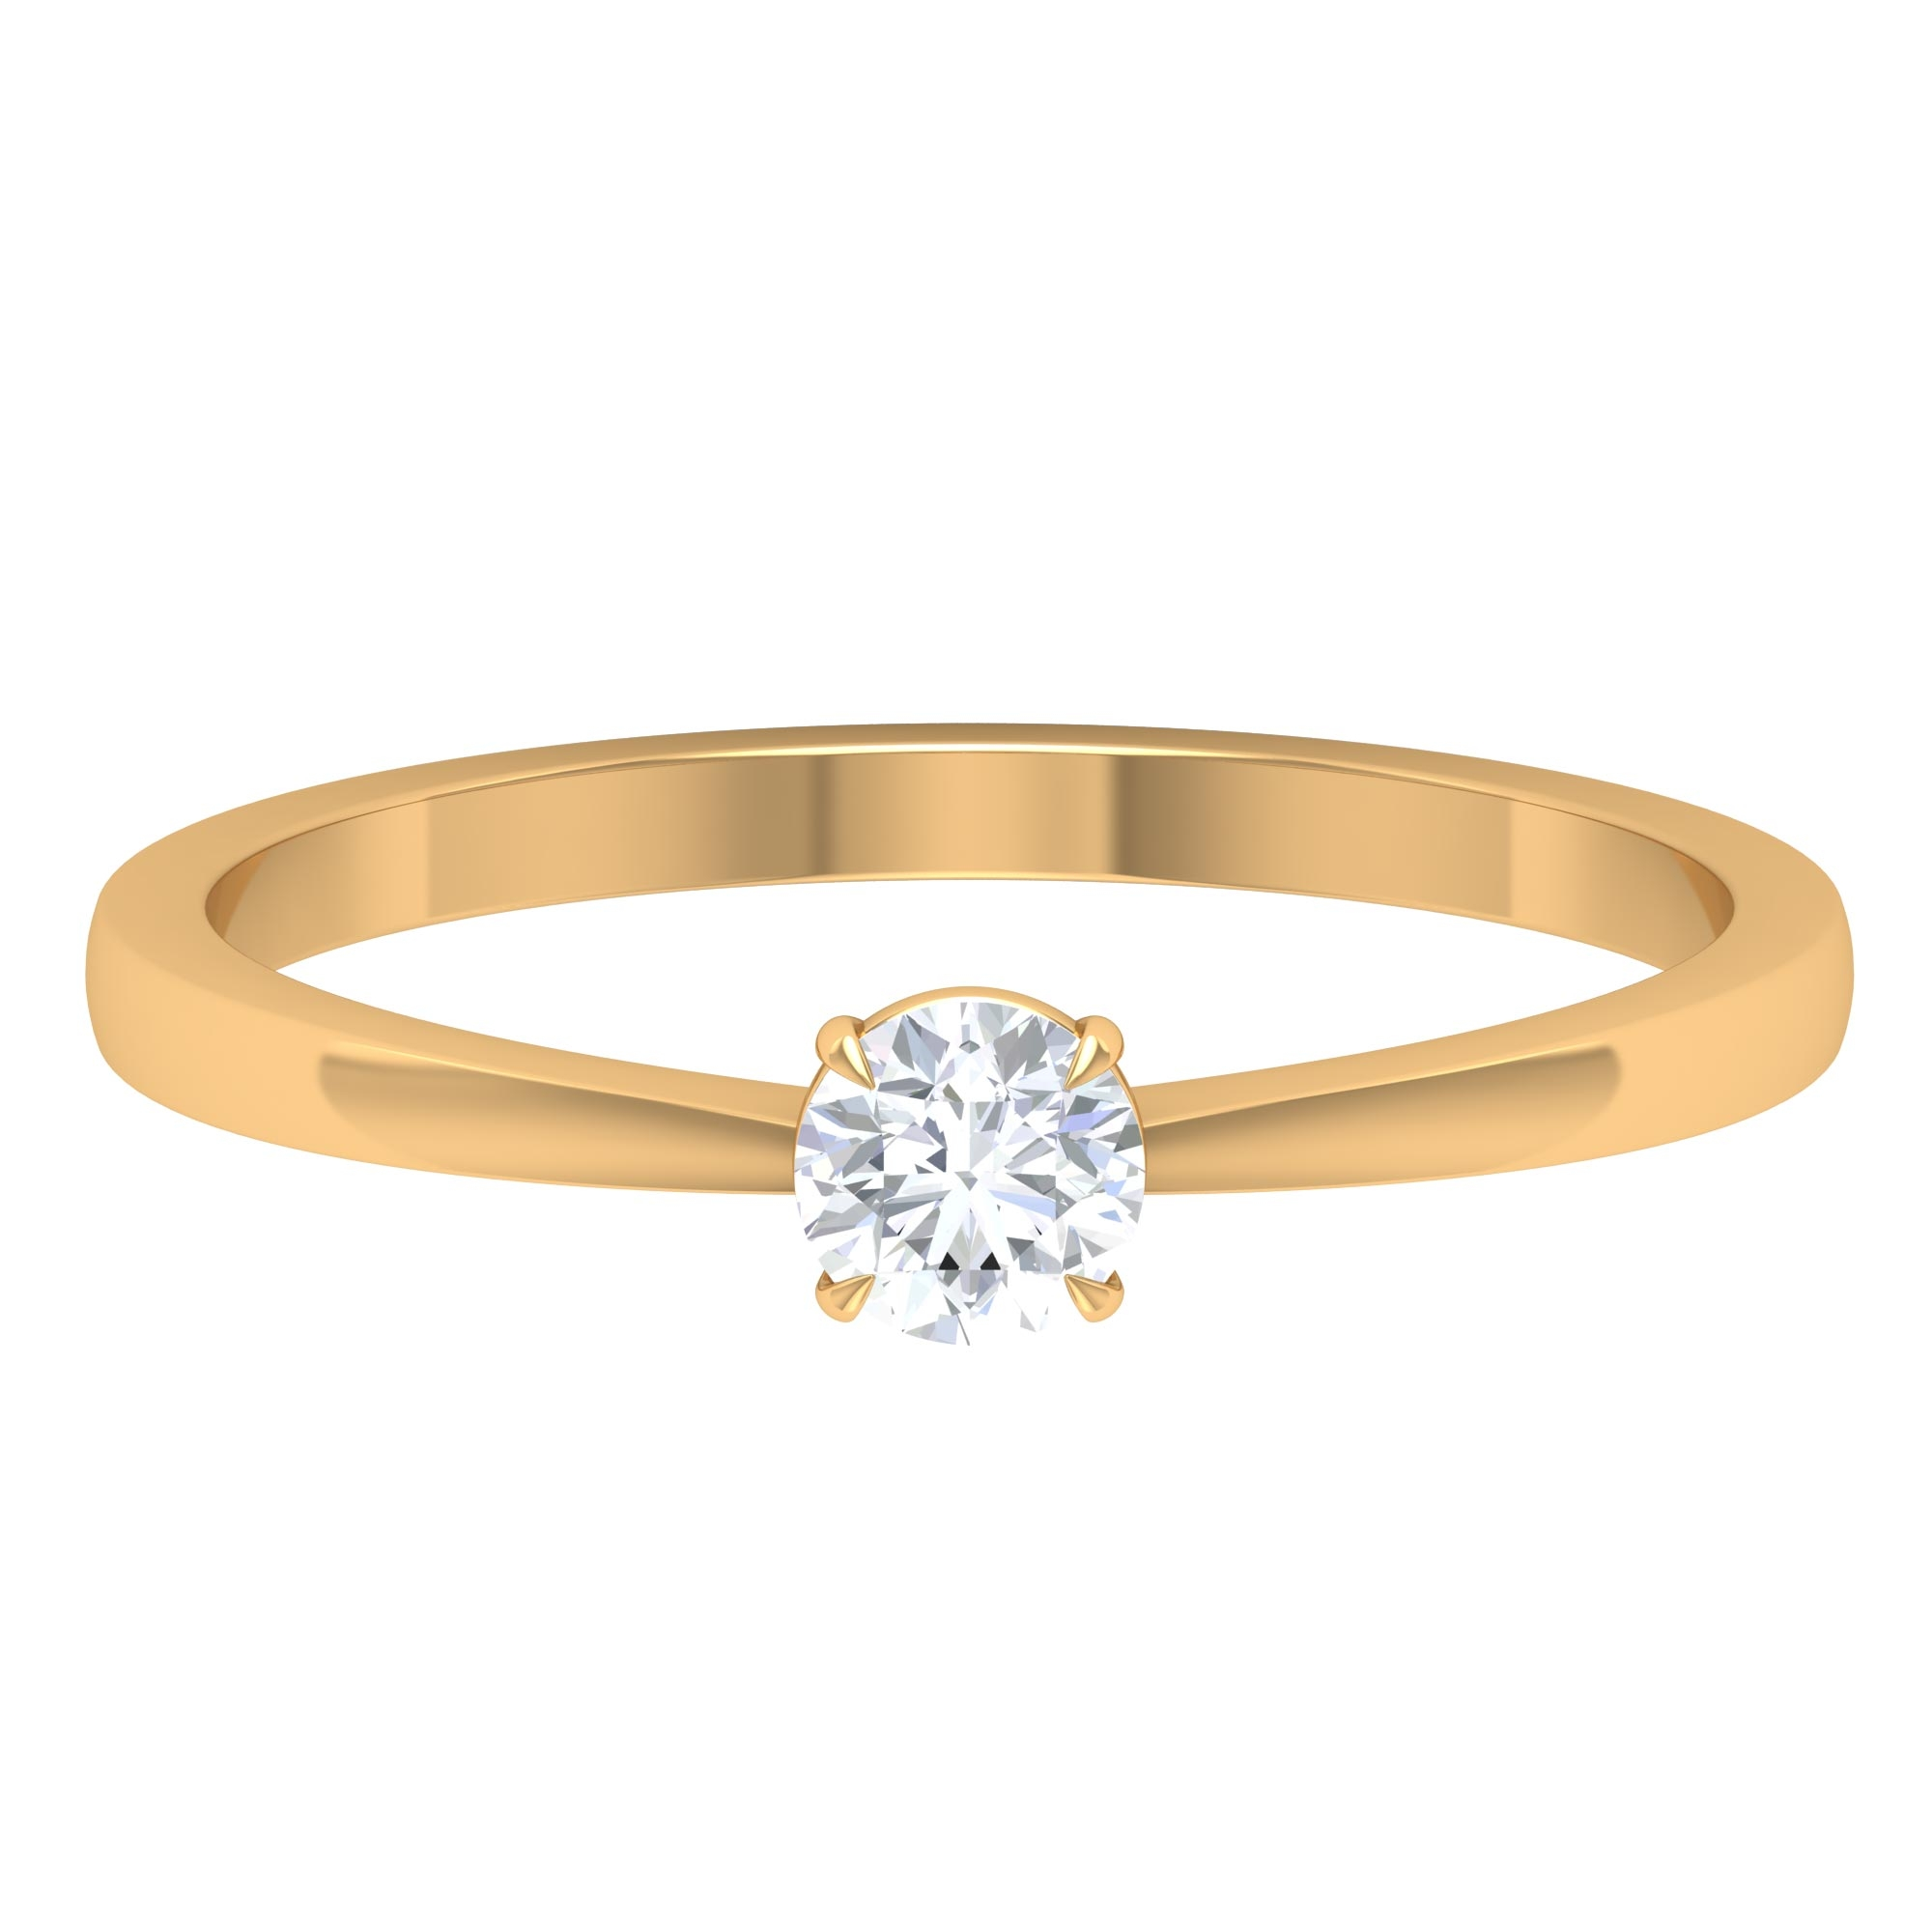 4 MM Round Cut Diamond Solitaire Ring in Claw Setting